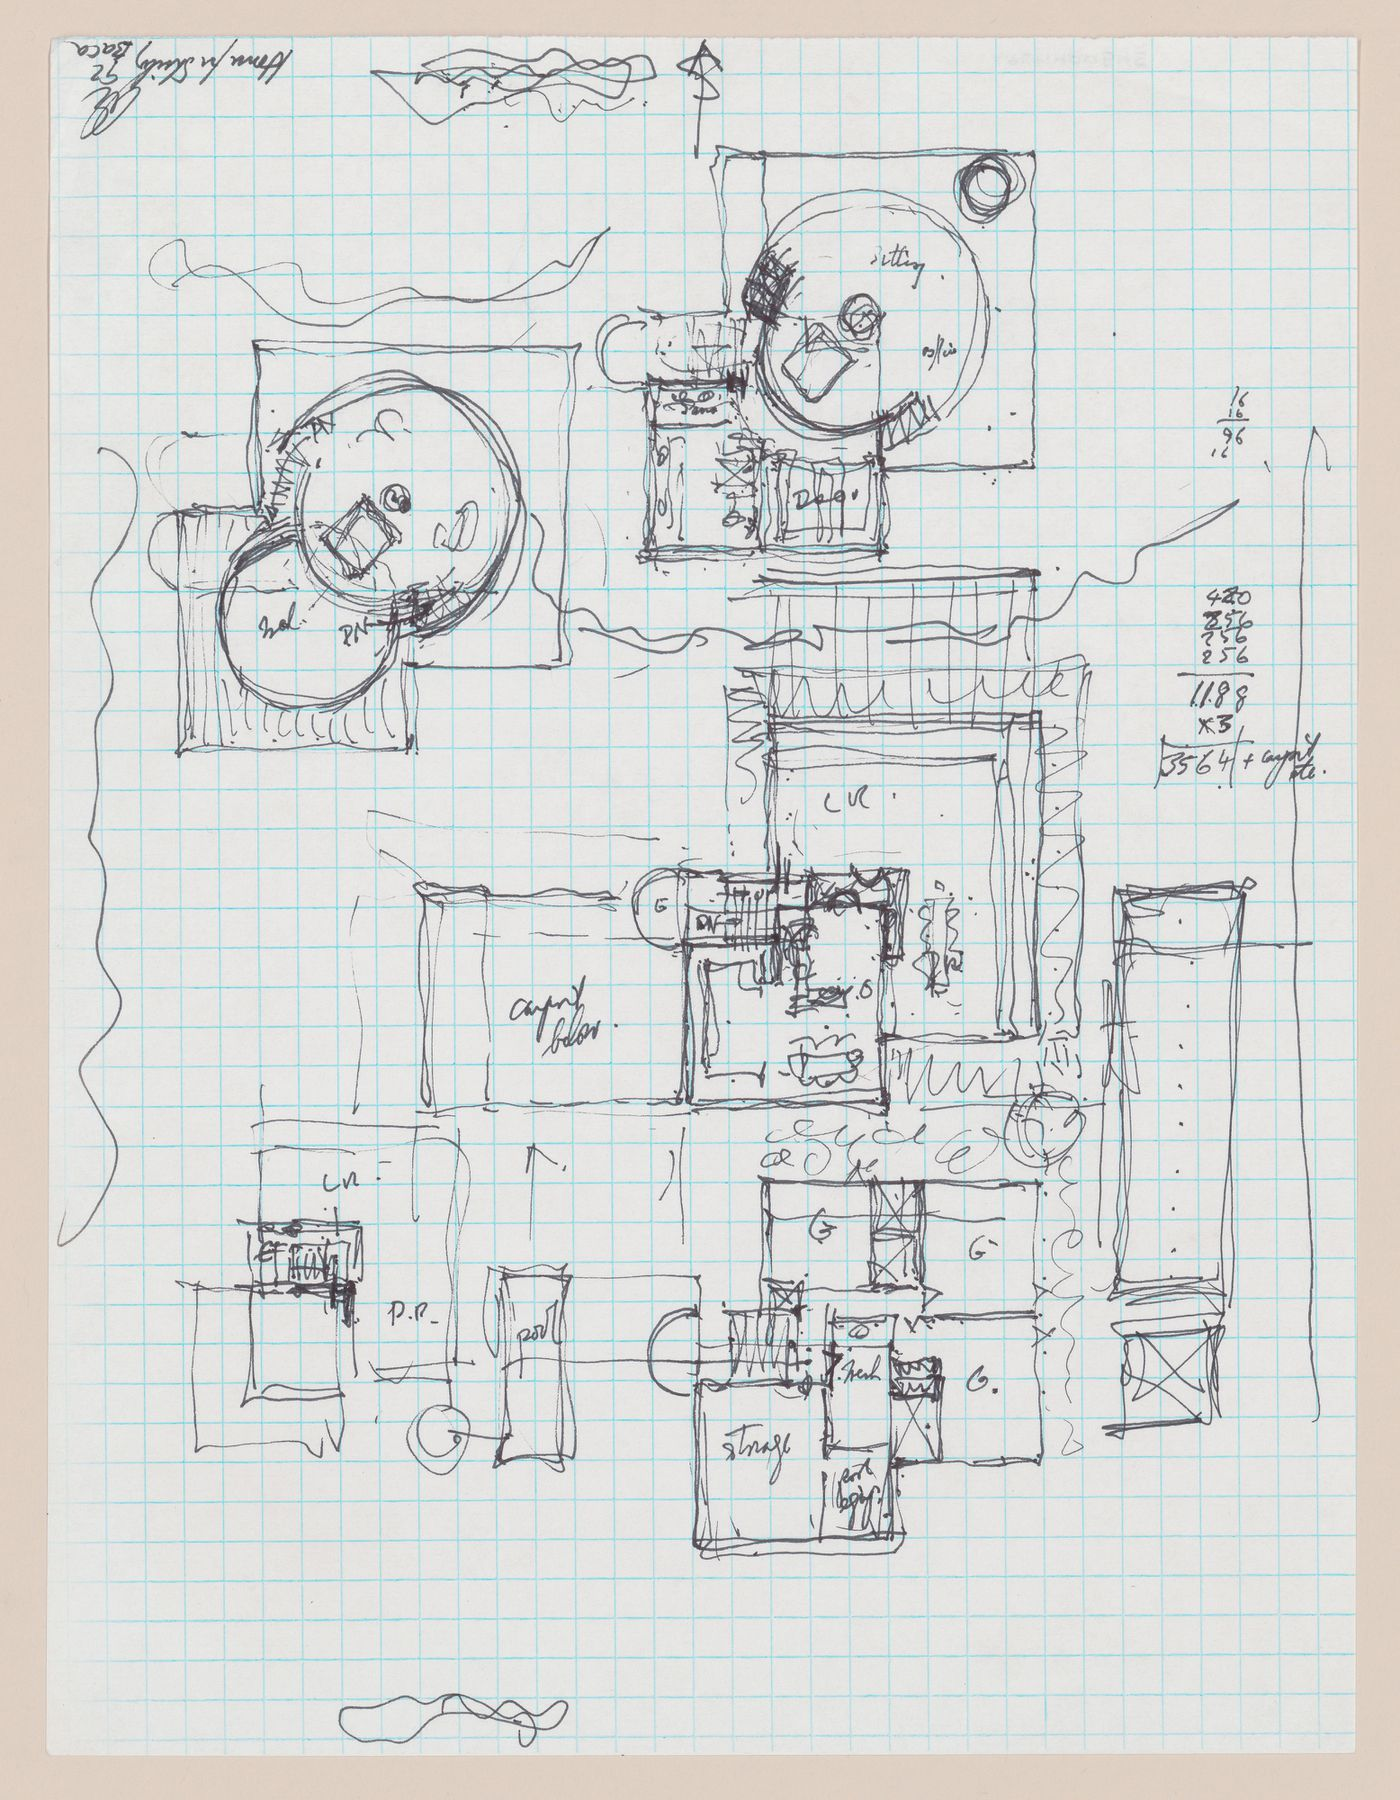 Sketch plans for Shirley MacLaine House, De Baca County, New Mexico